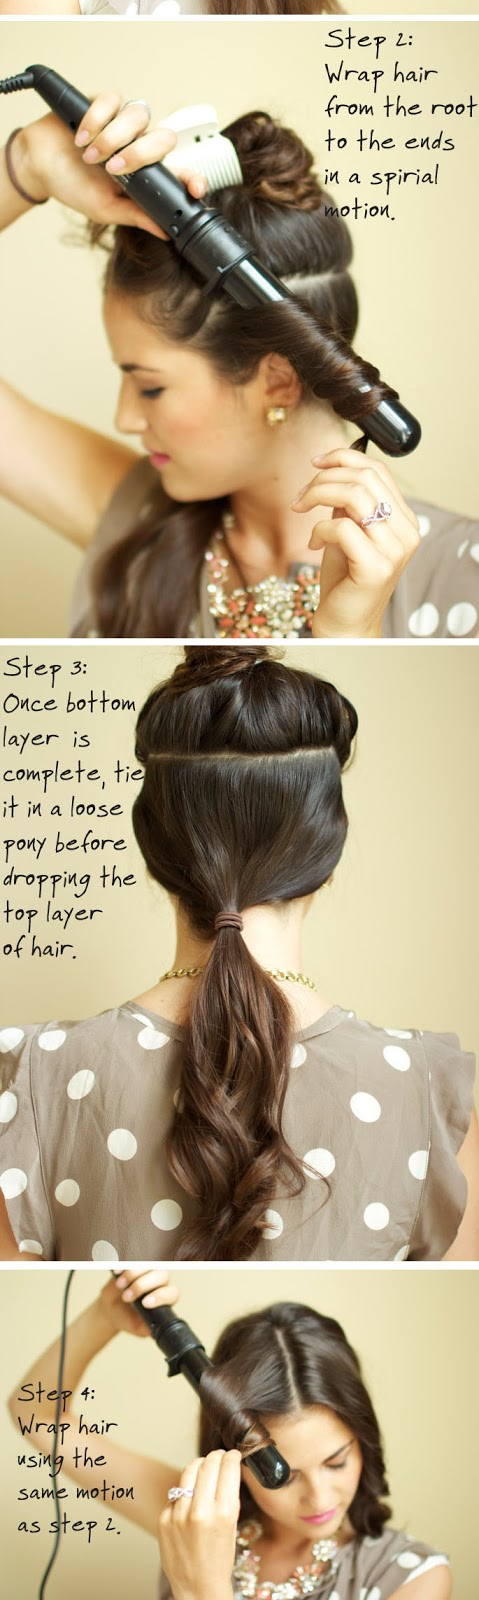 How to Curl Your Hair with a Straightener